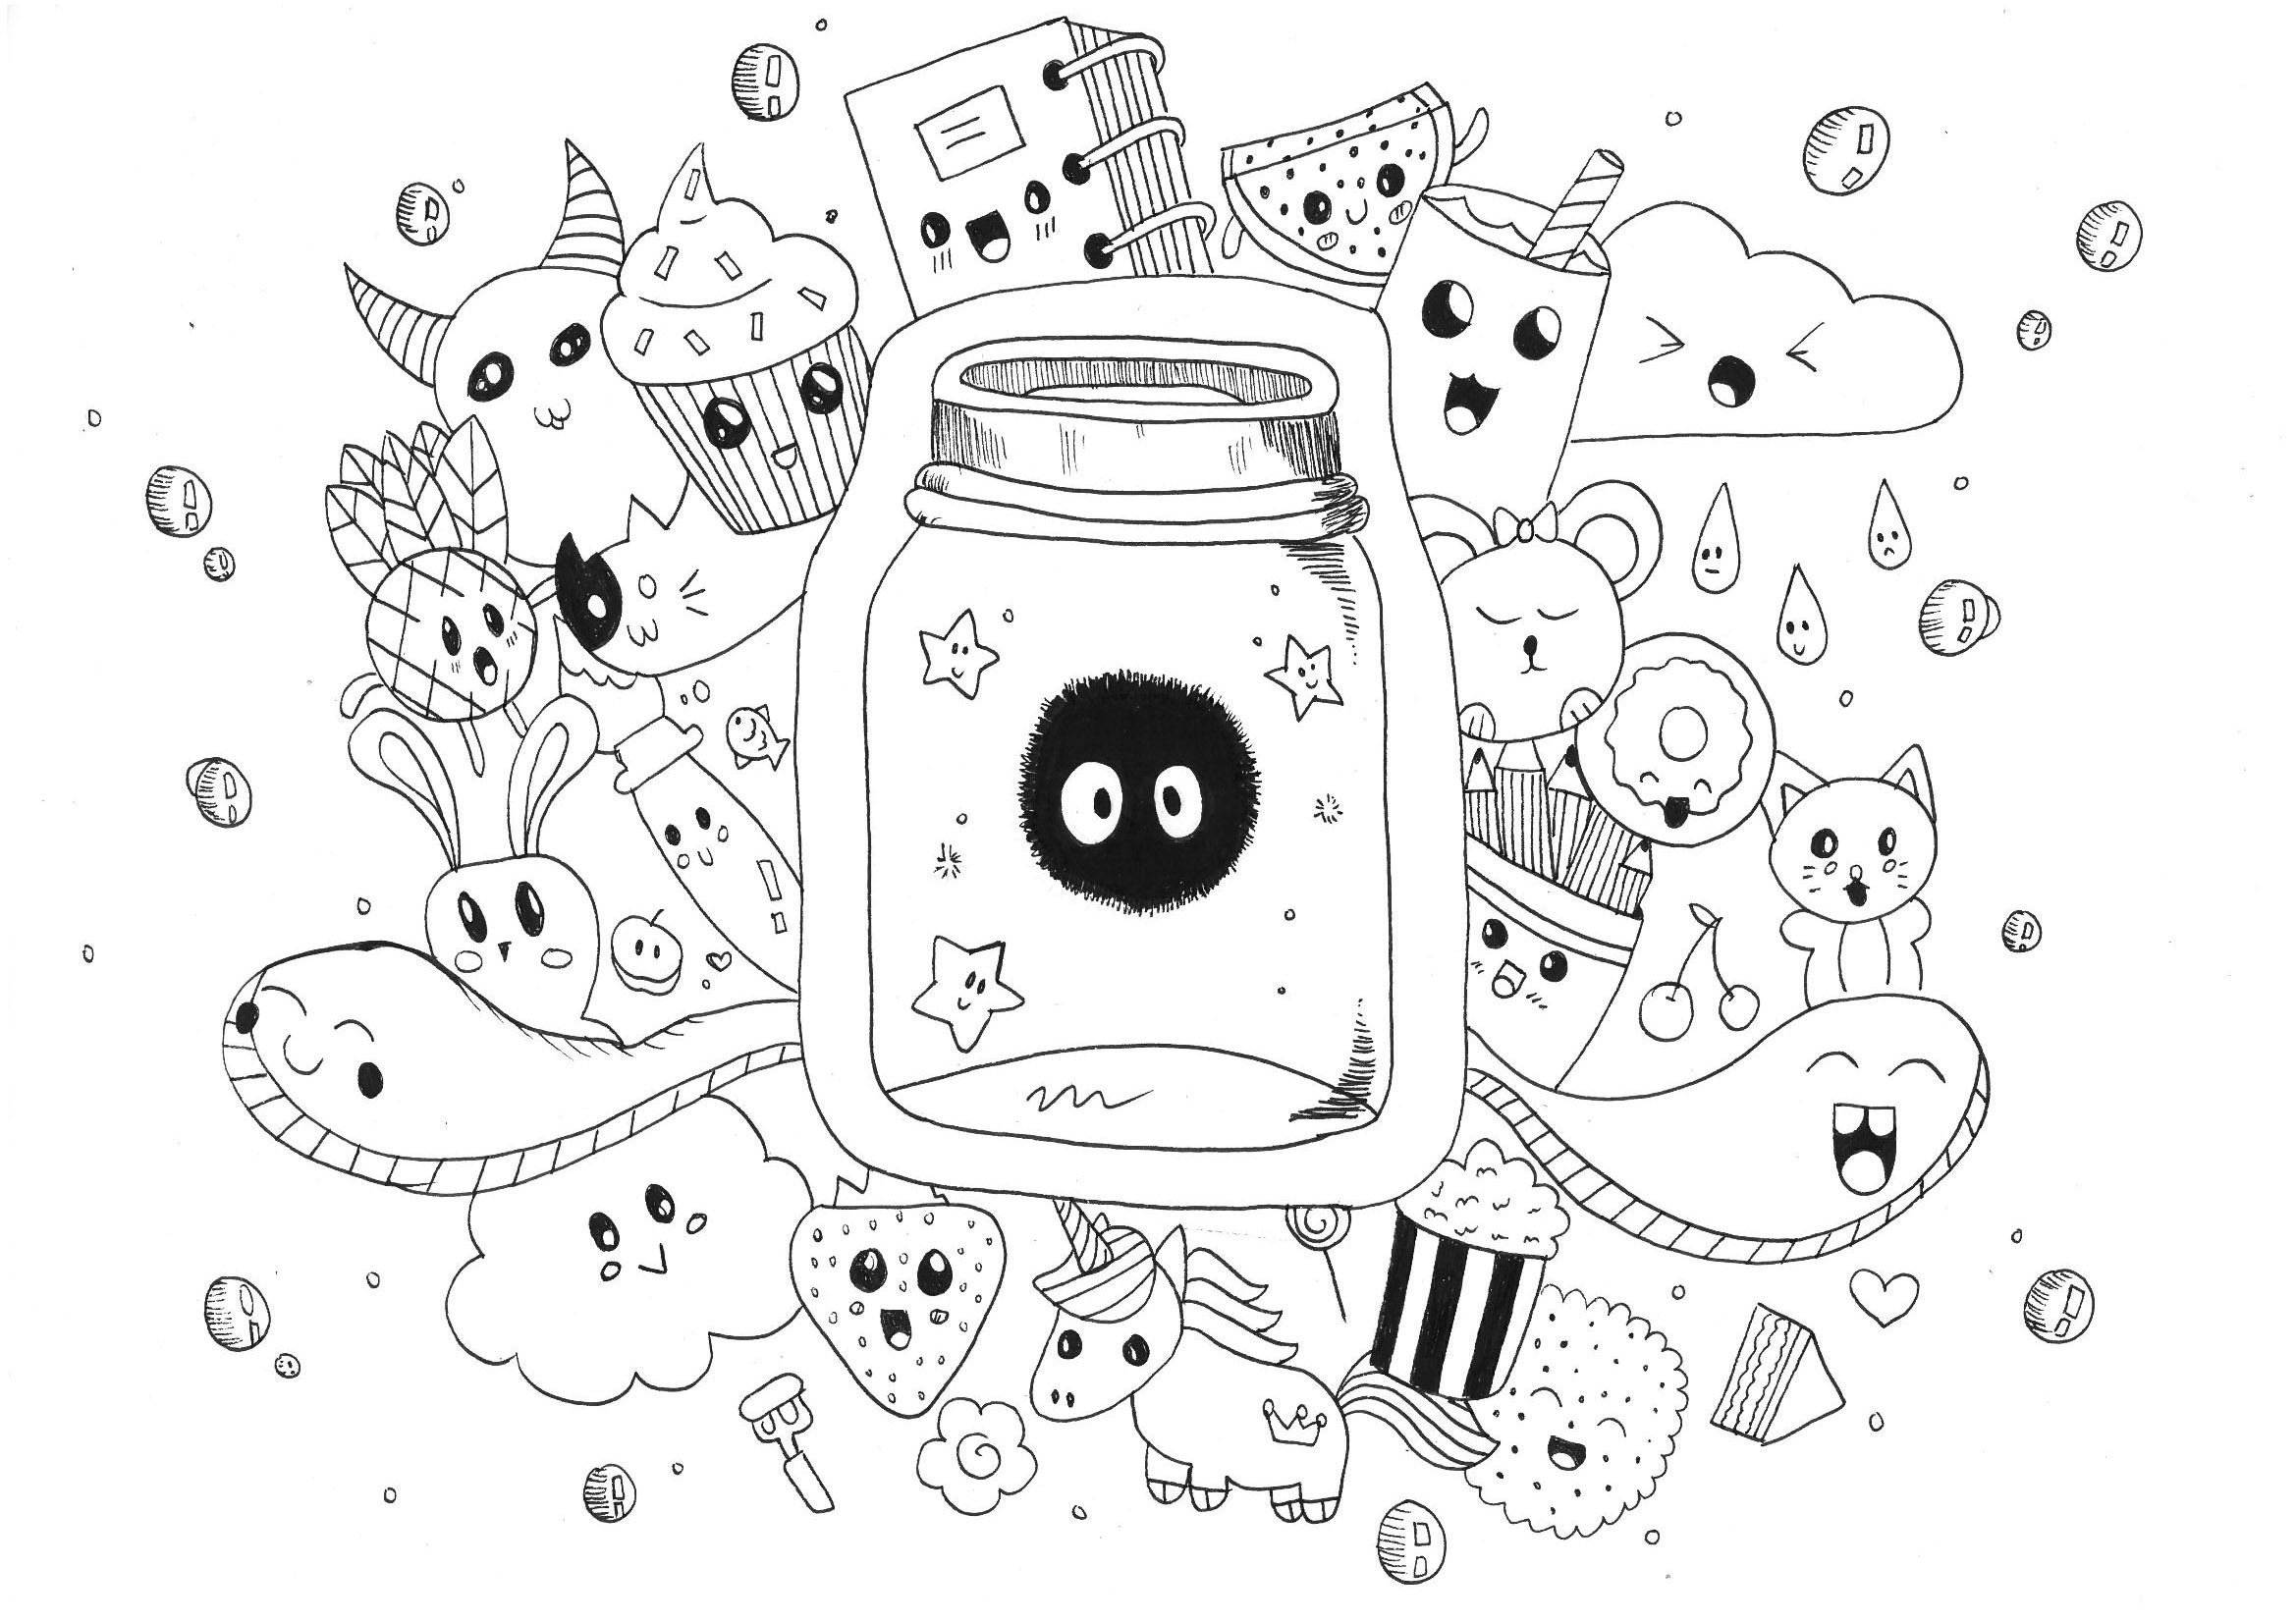 doodle pages doodle page by esther rose on deviantart doodle pages